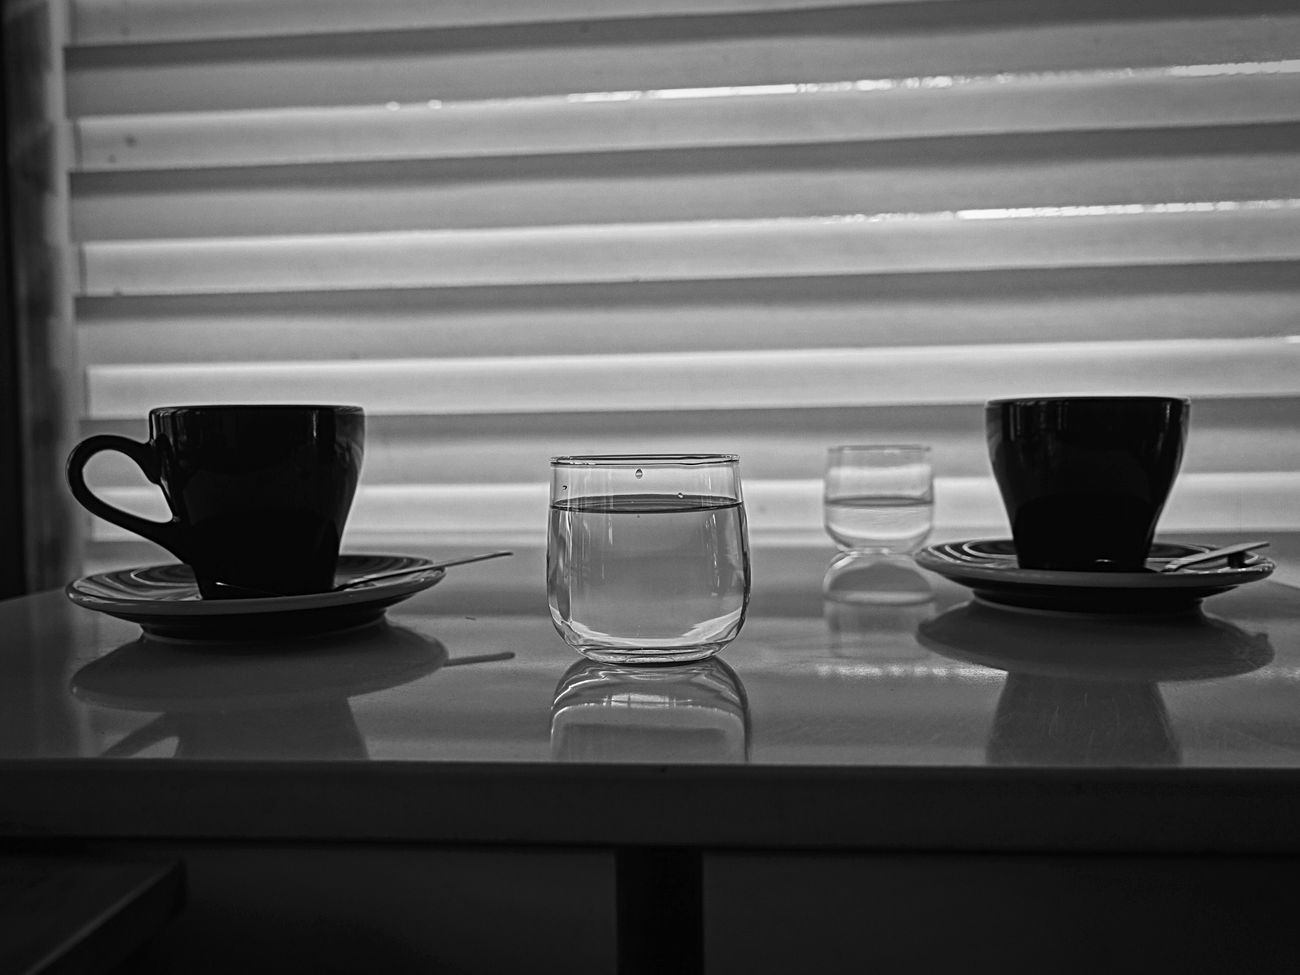 couple cups Coffee Cup Table Cafe Sonyrx100iv Richbw